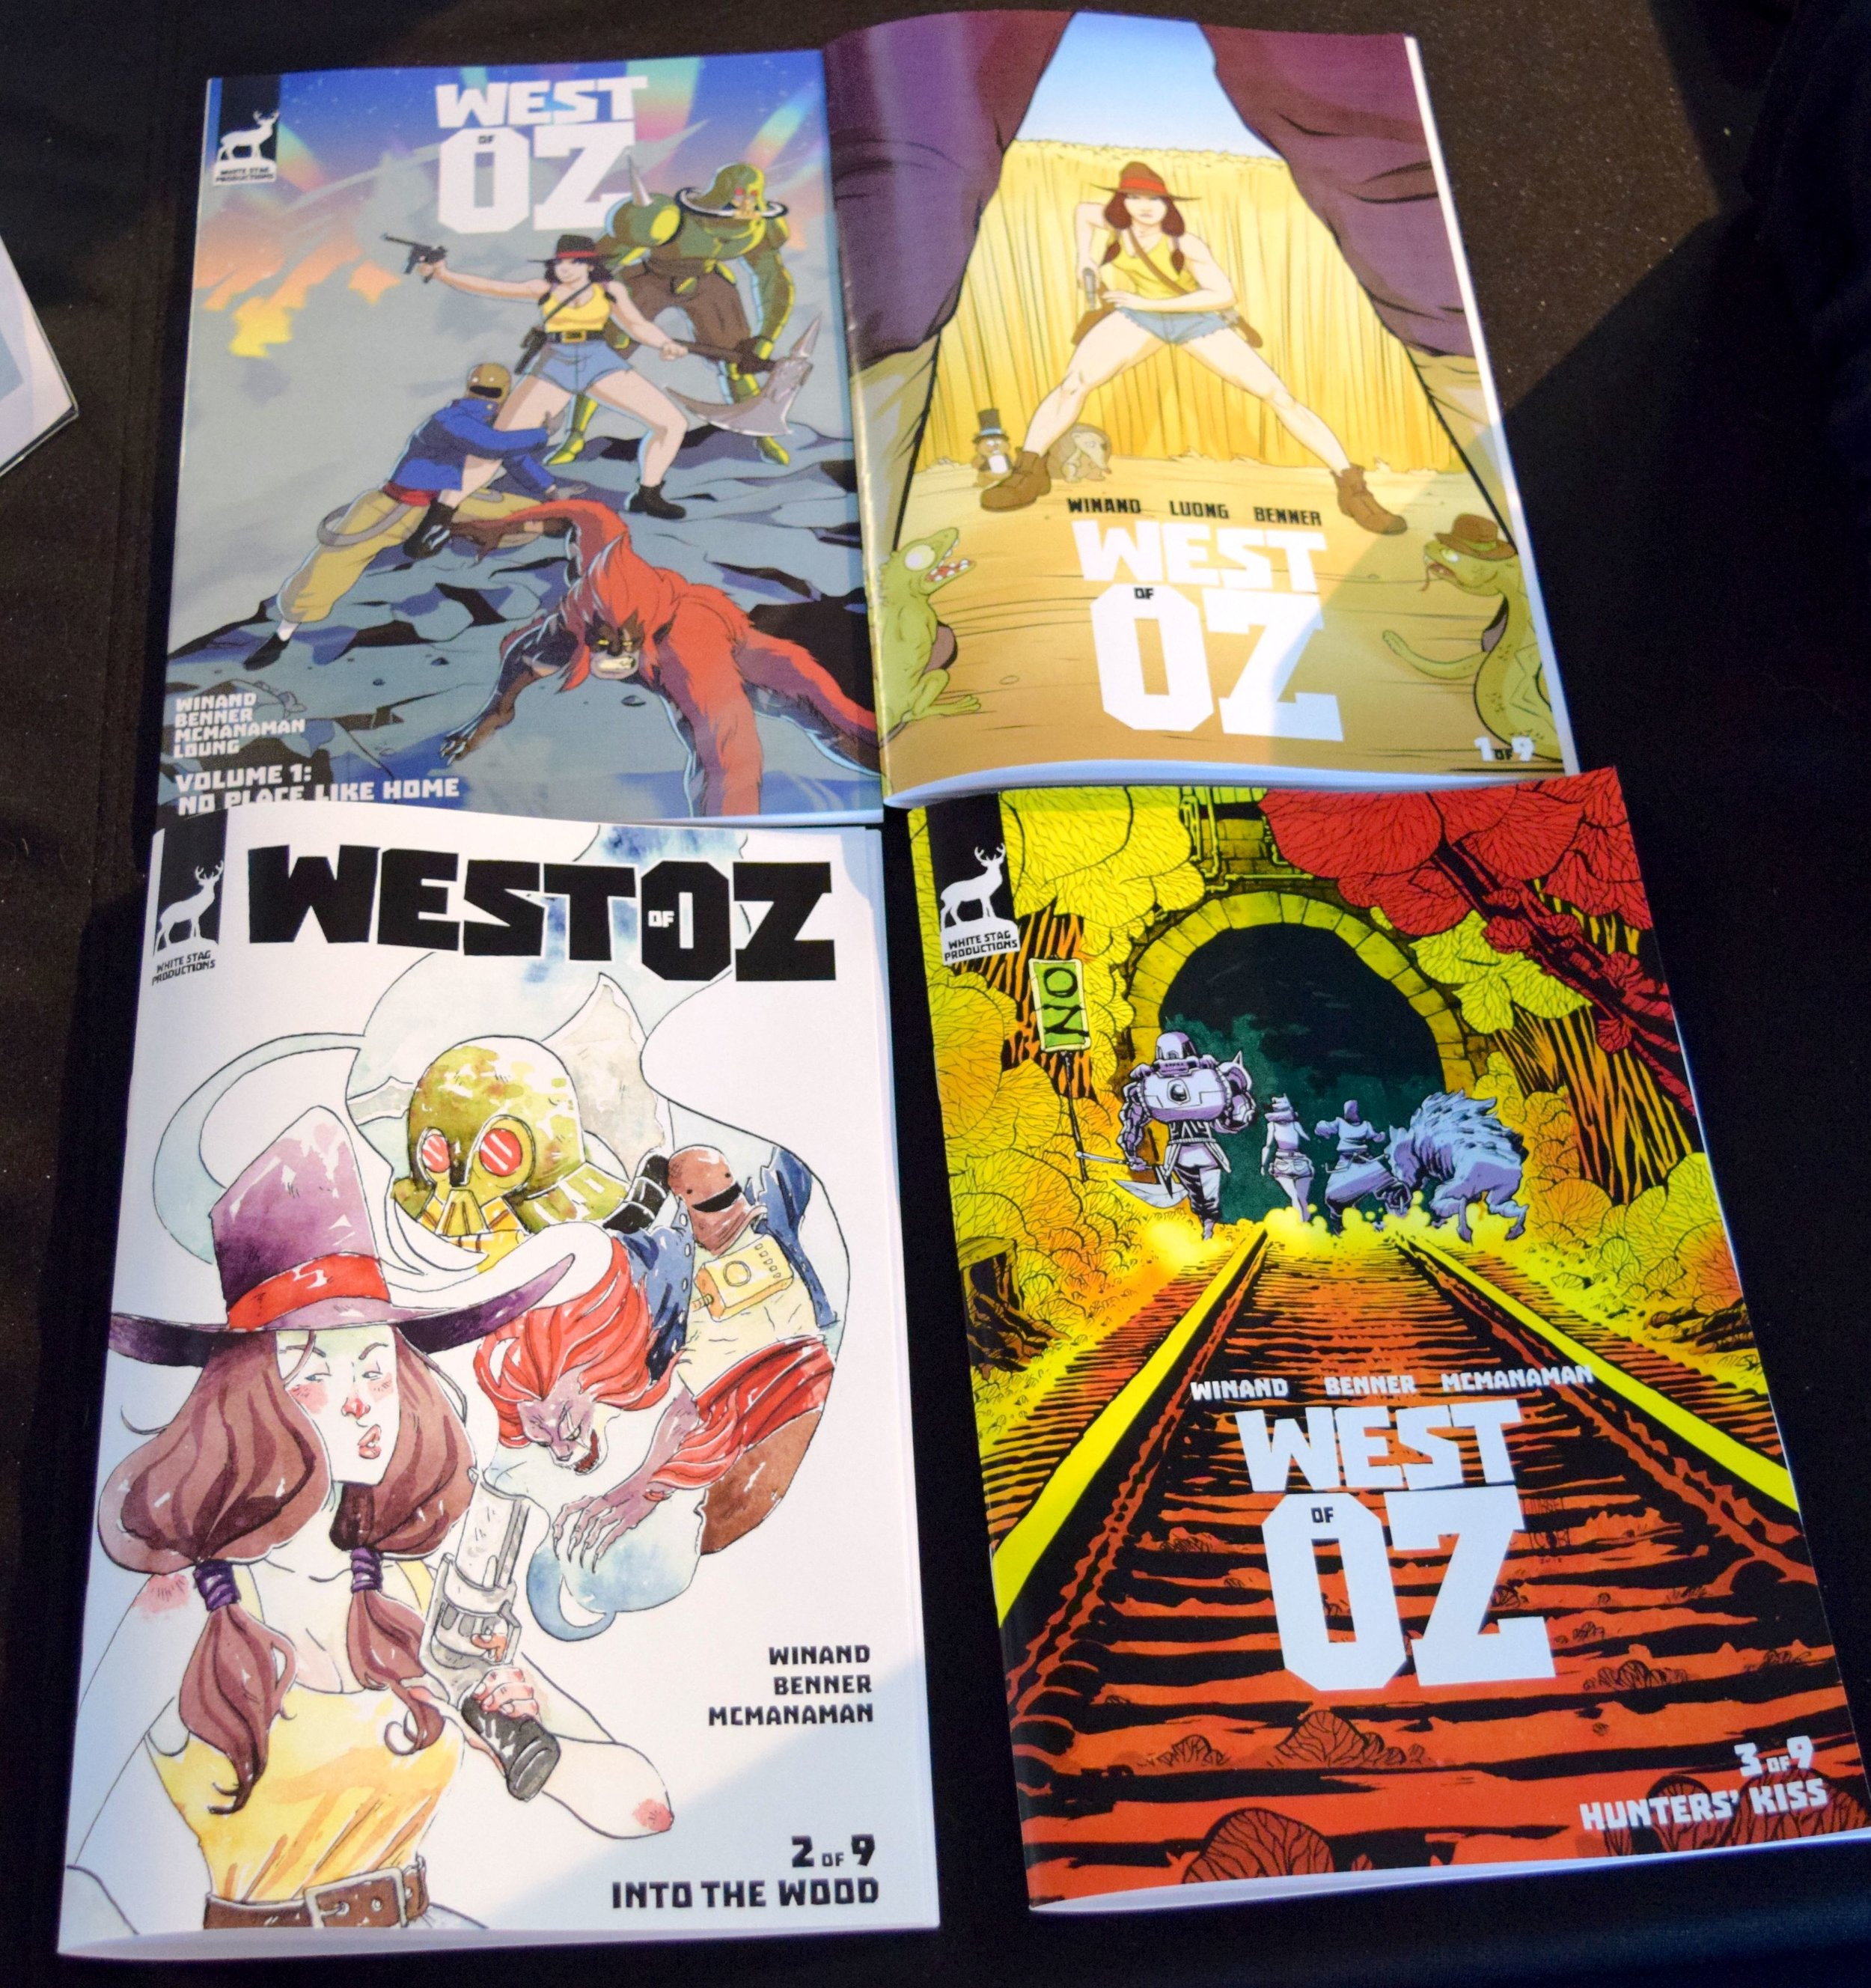 West of Oz: all three issues and the trade paperback at DINK 2018.